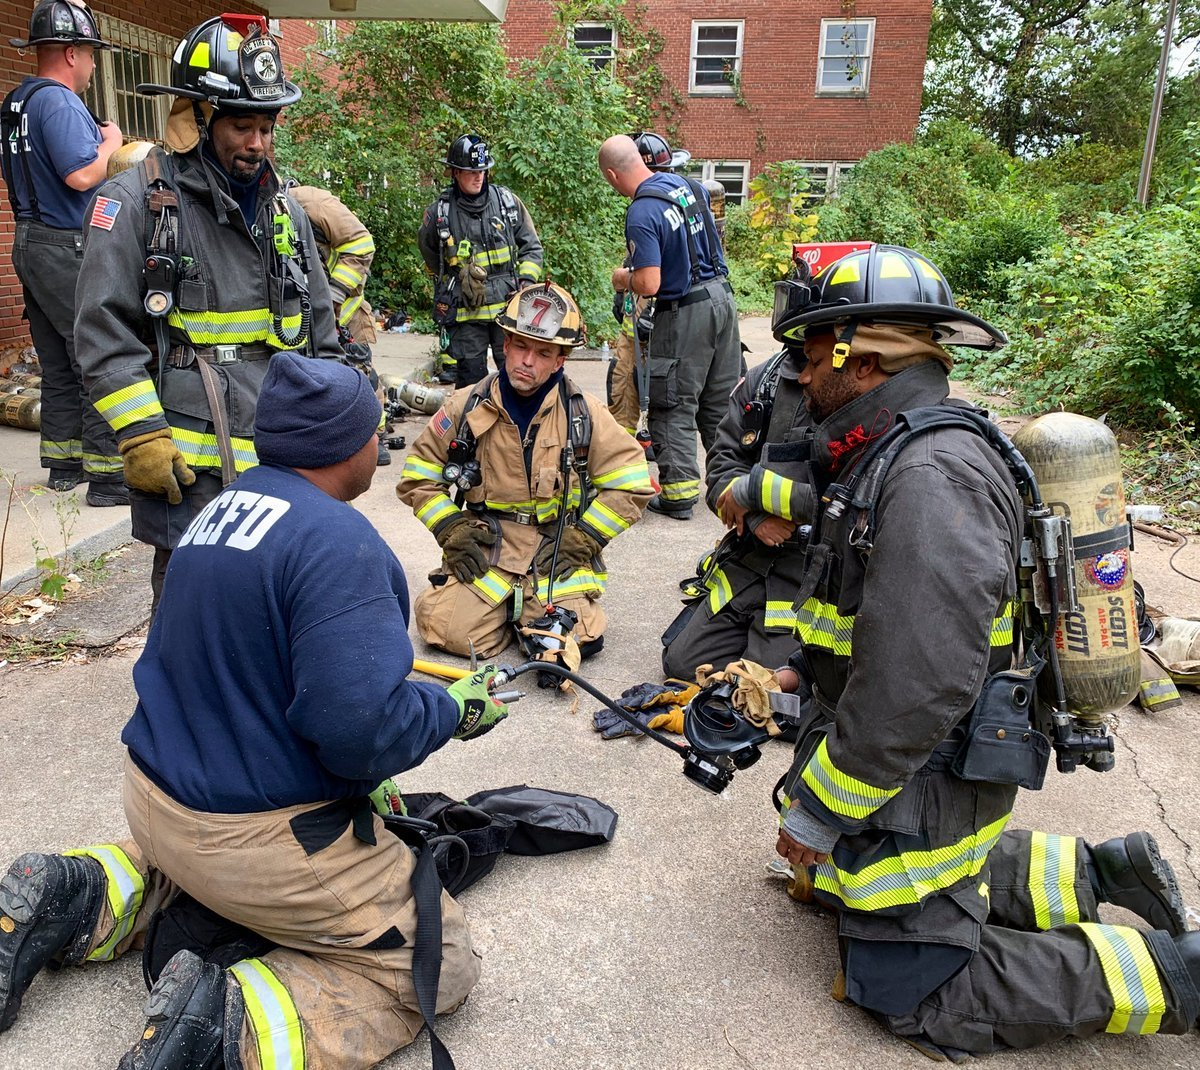 Today's Firefighters Need Body Armor